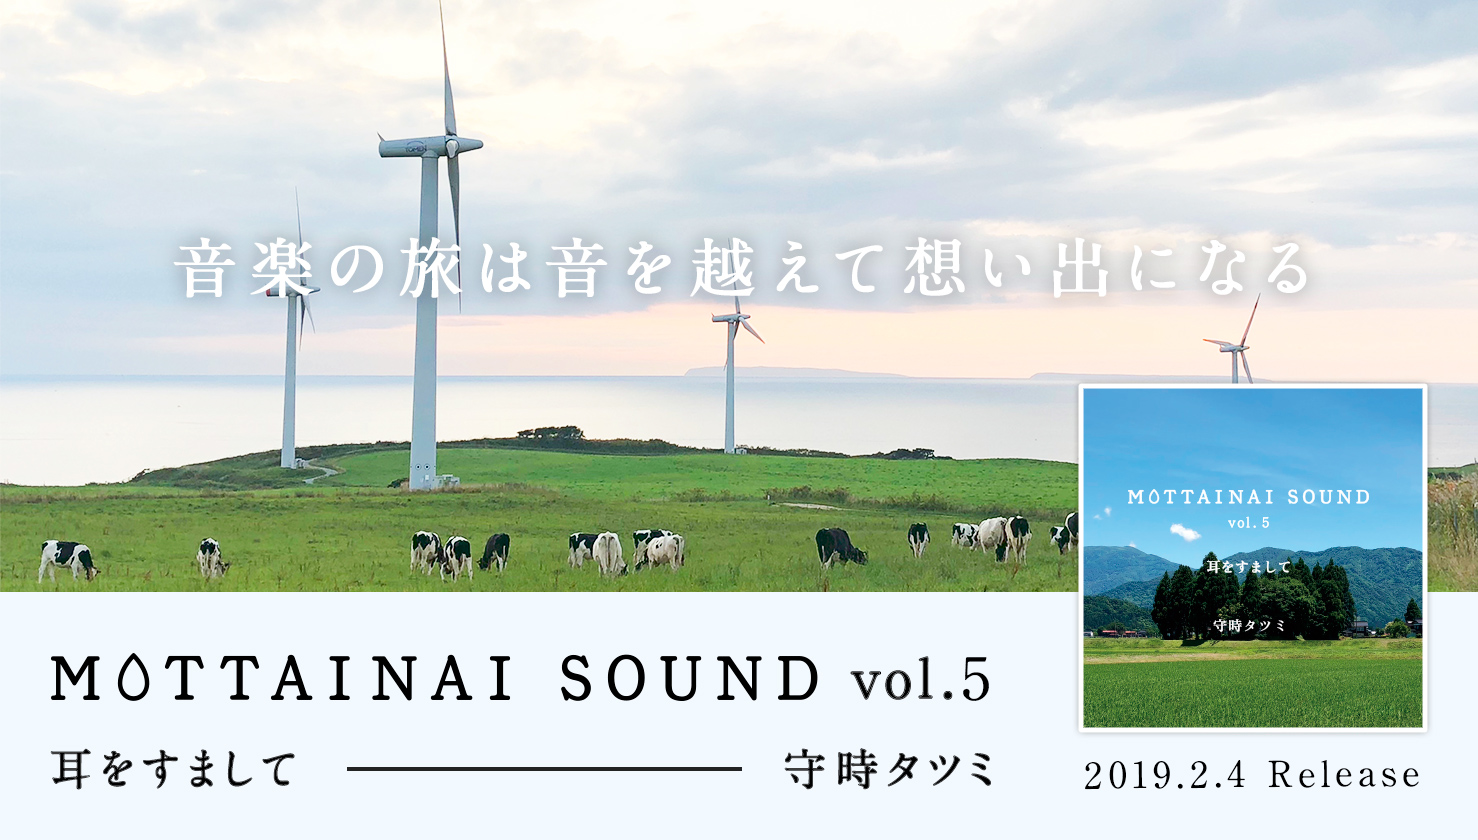 mottainaisound5